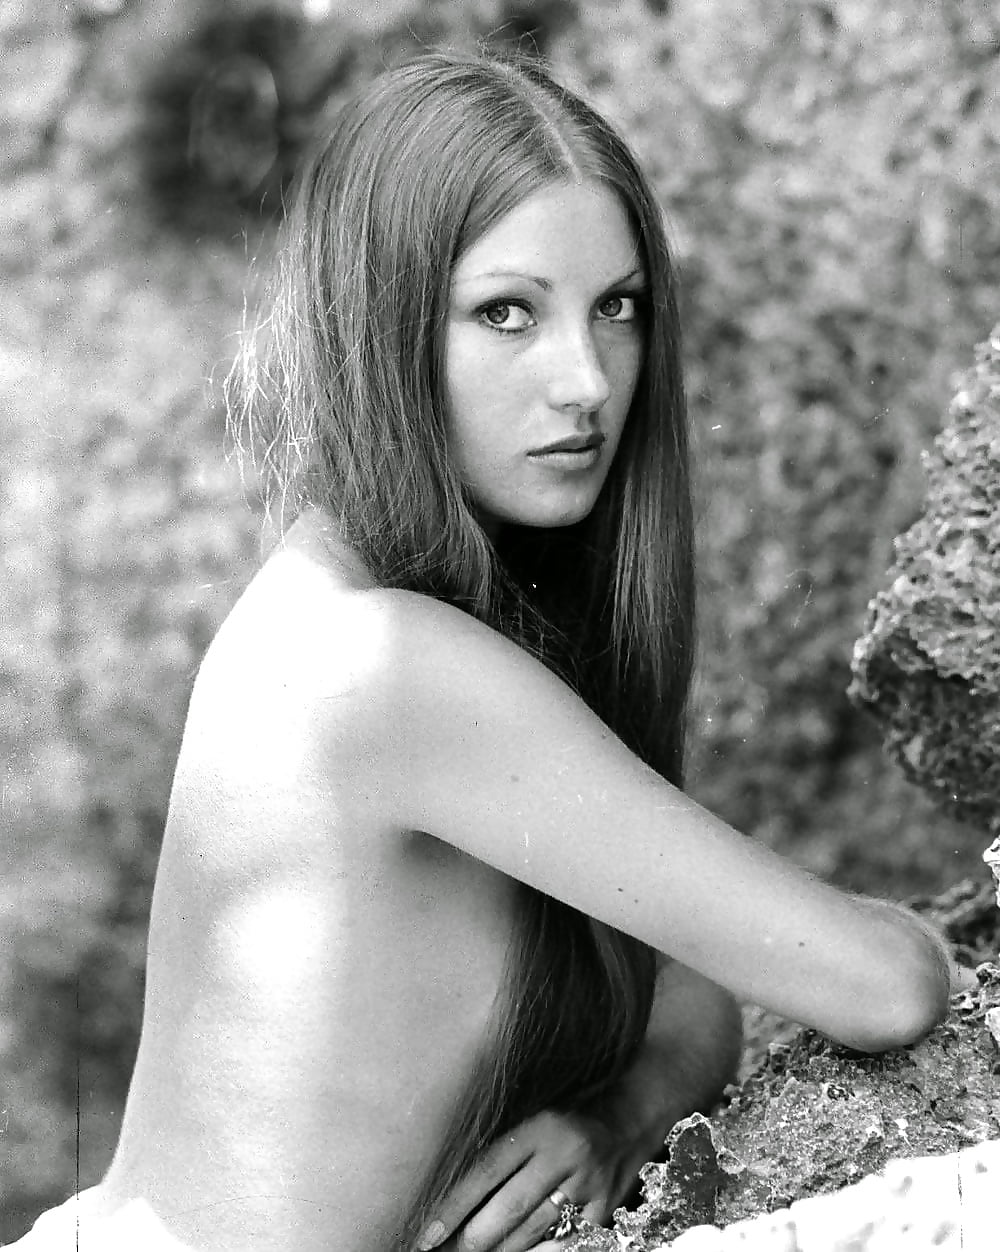 bitch-pics-jane-seymour-young-naked-girls-subculture-rebecca